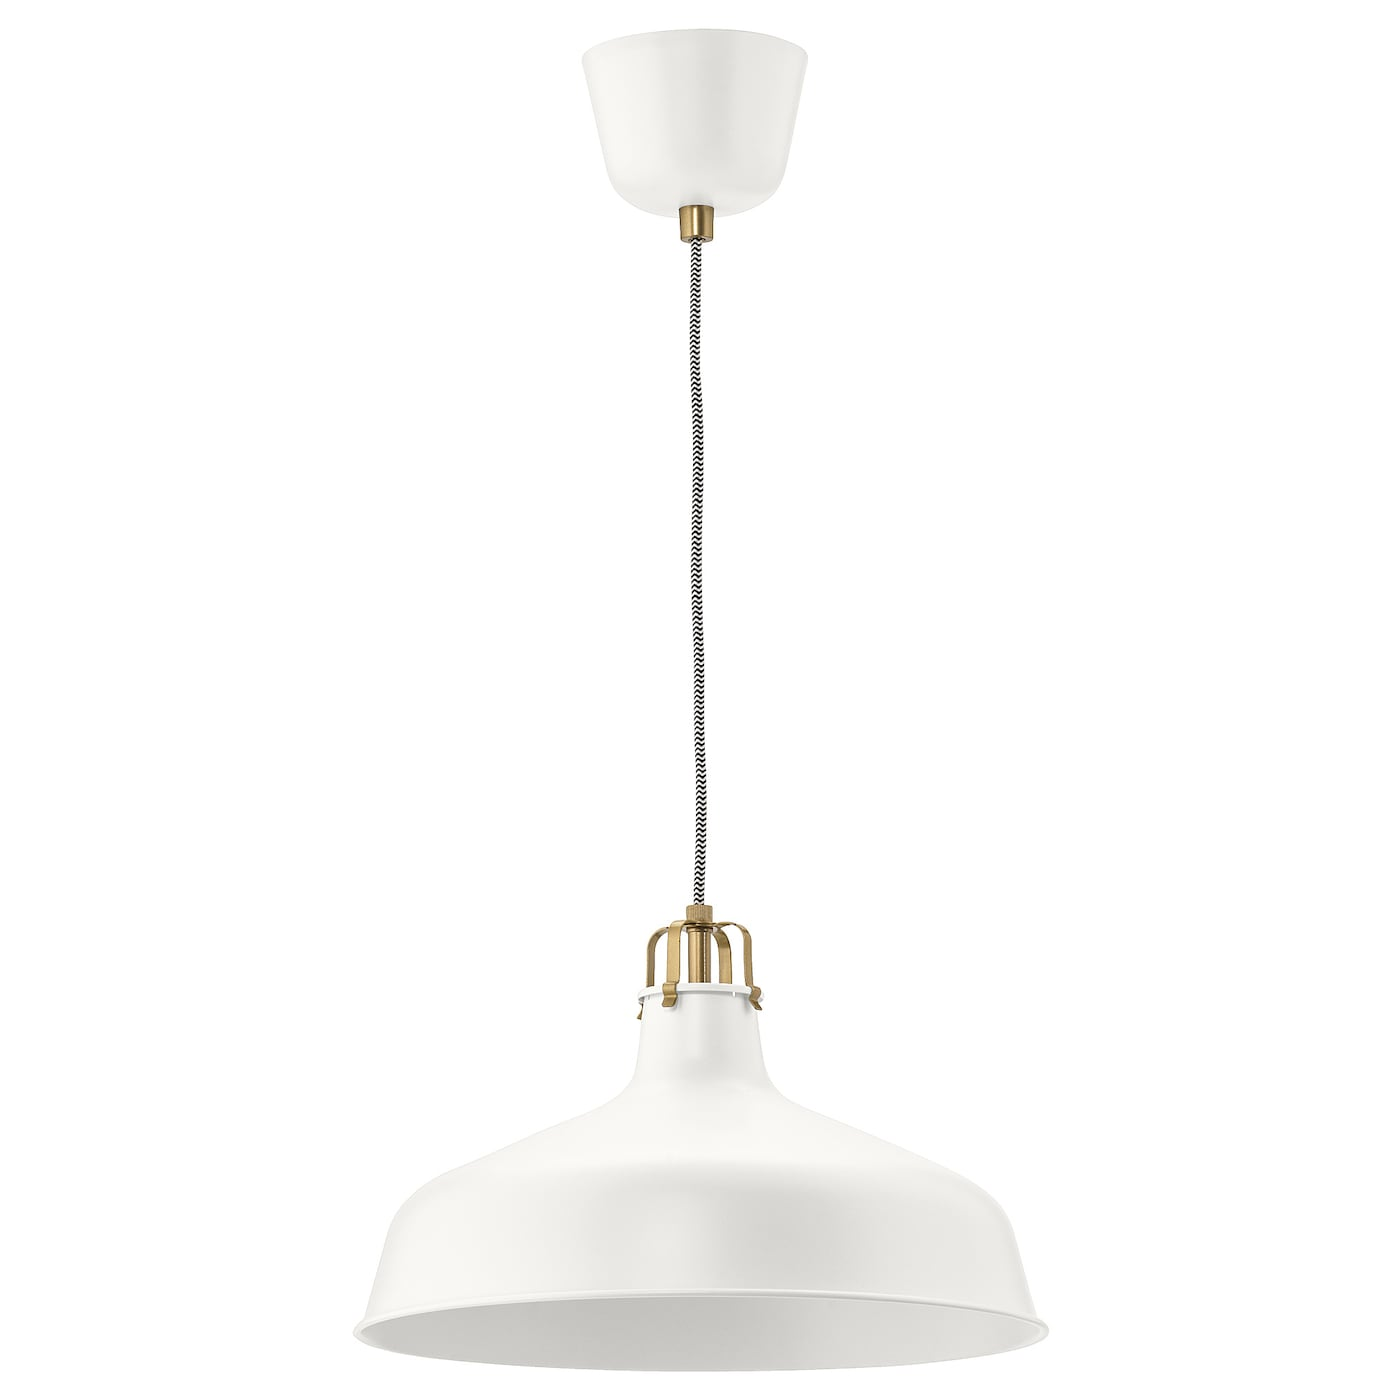 IKEA RANARP suspension